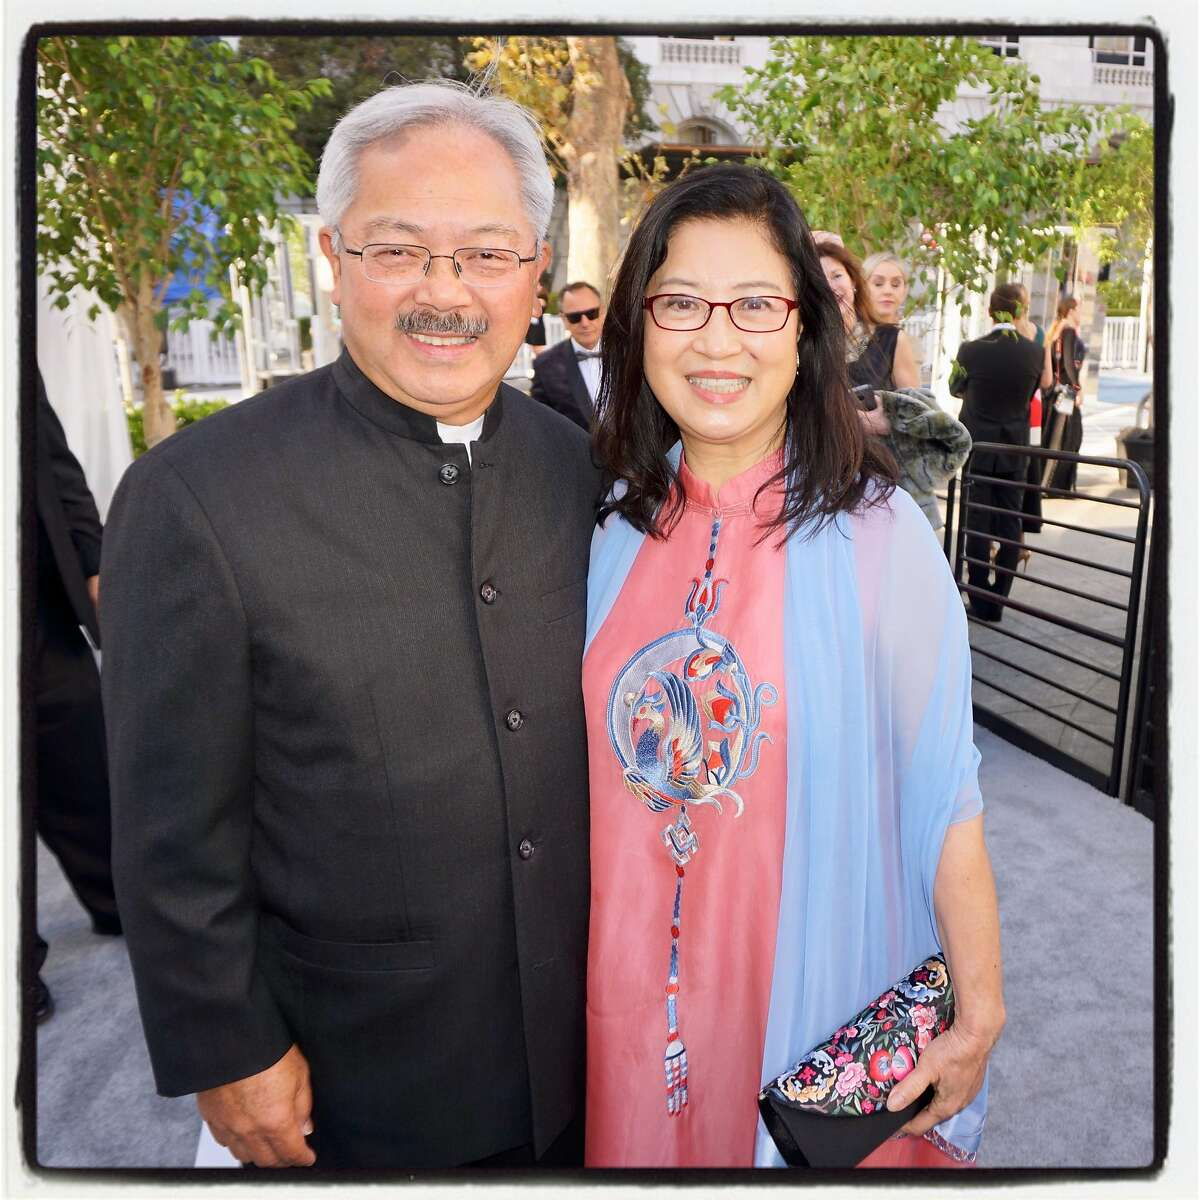 Chinese Education Center has been renamed Edwin and Anita Lee Elementary, after the late mayor and his wife.